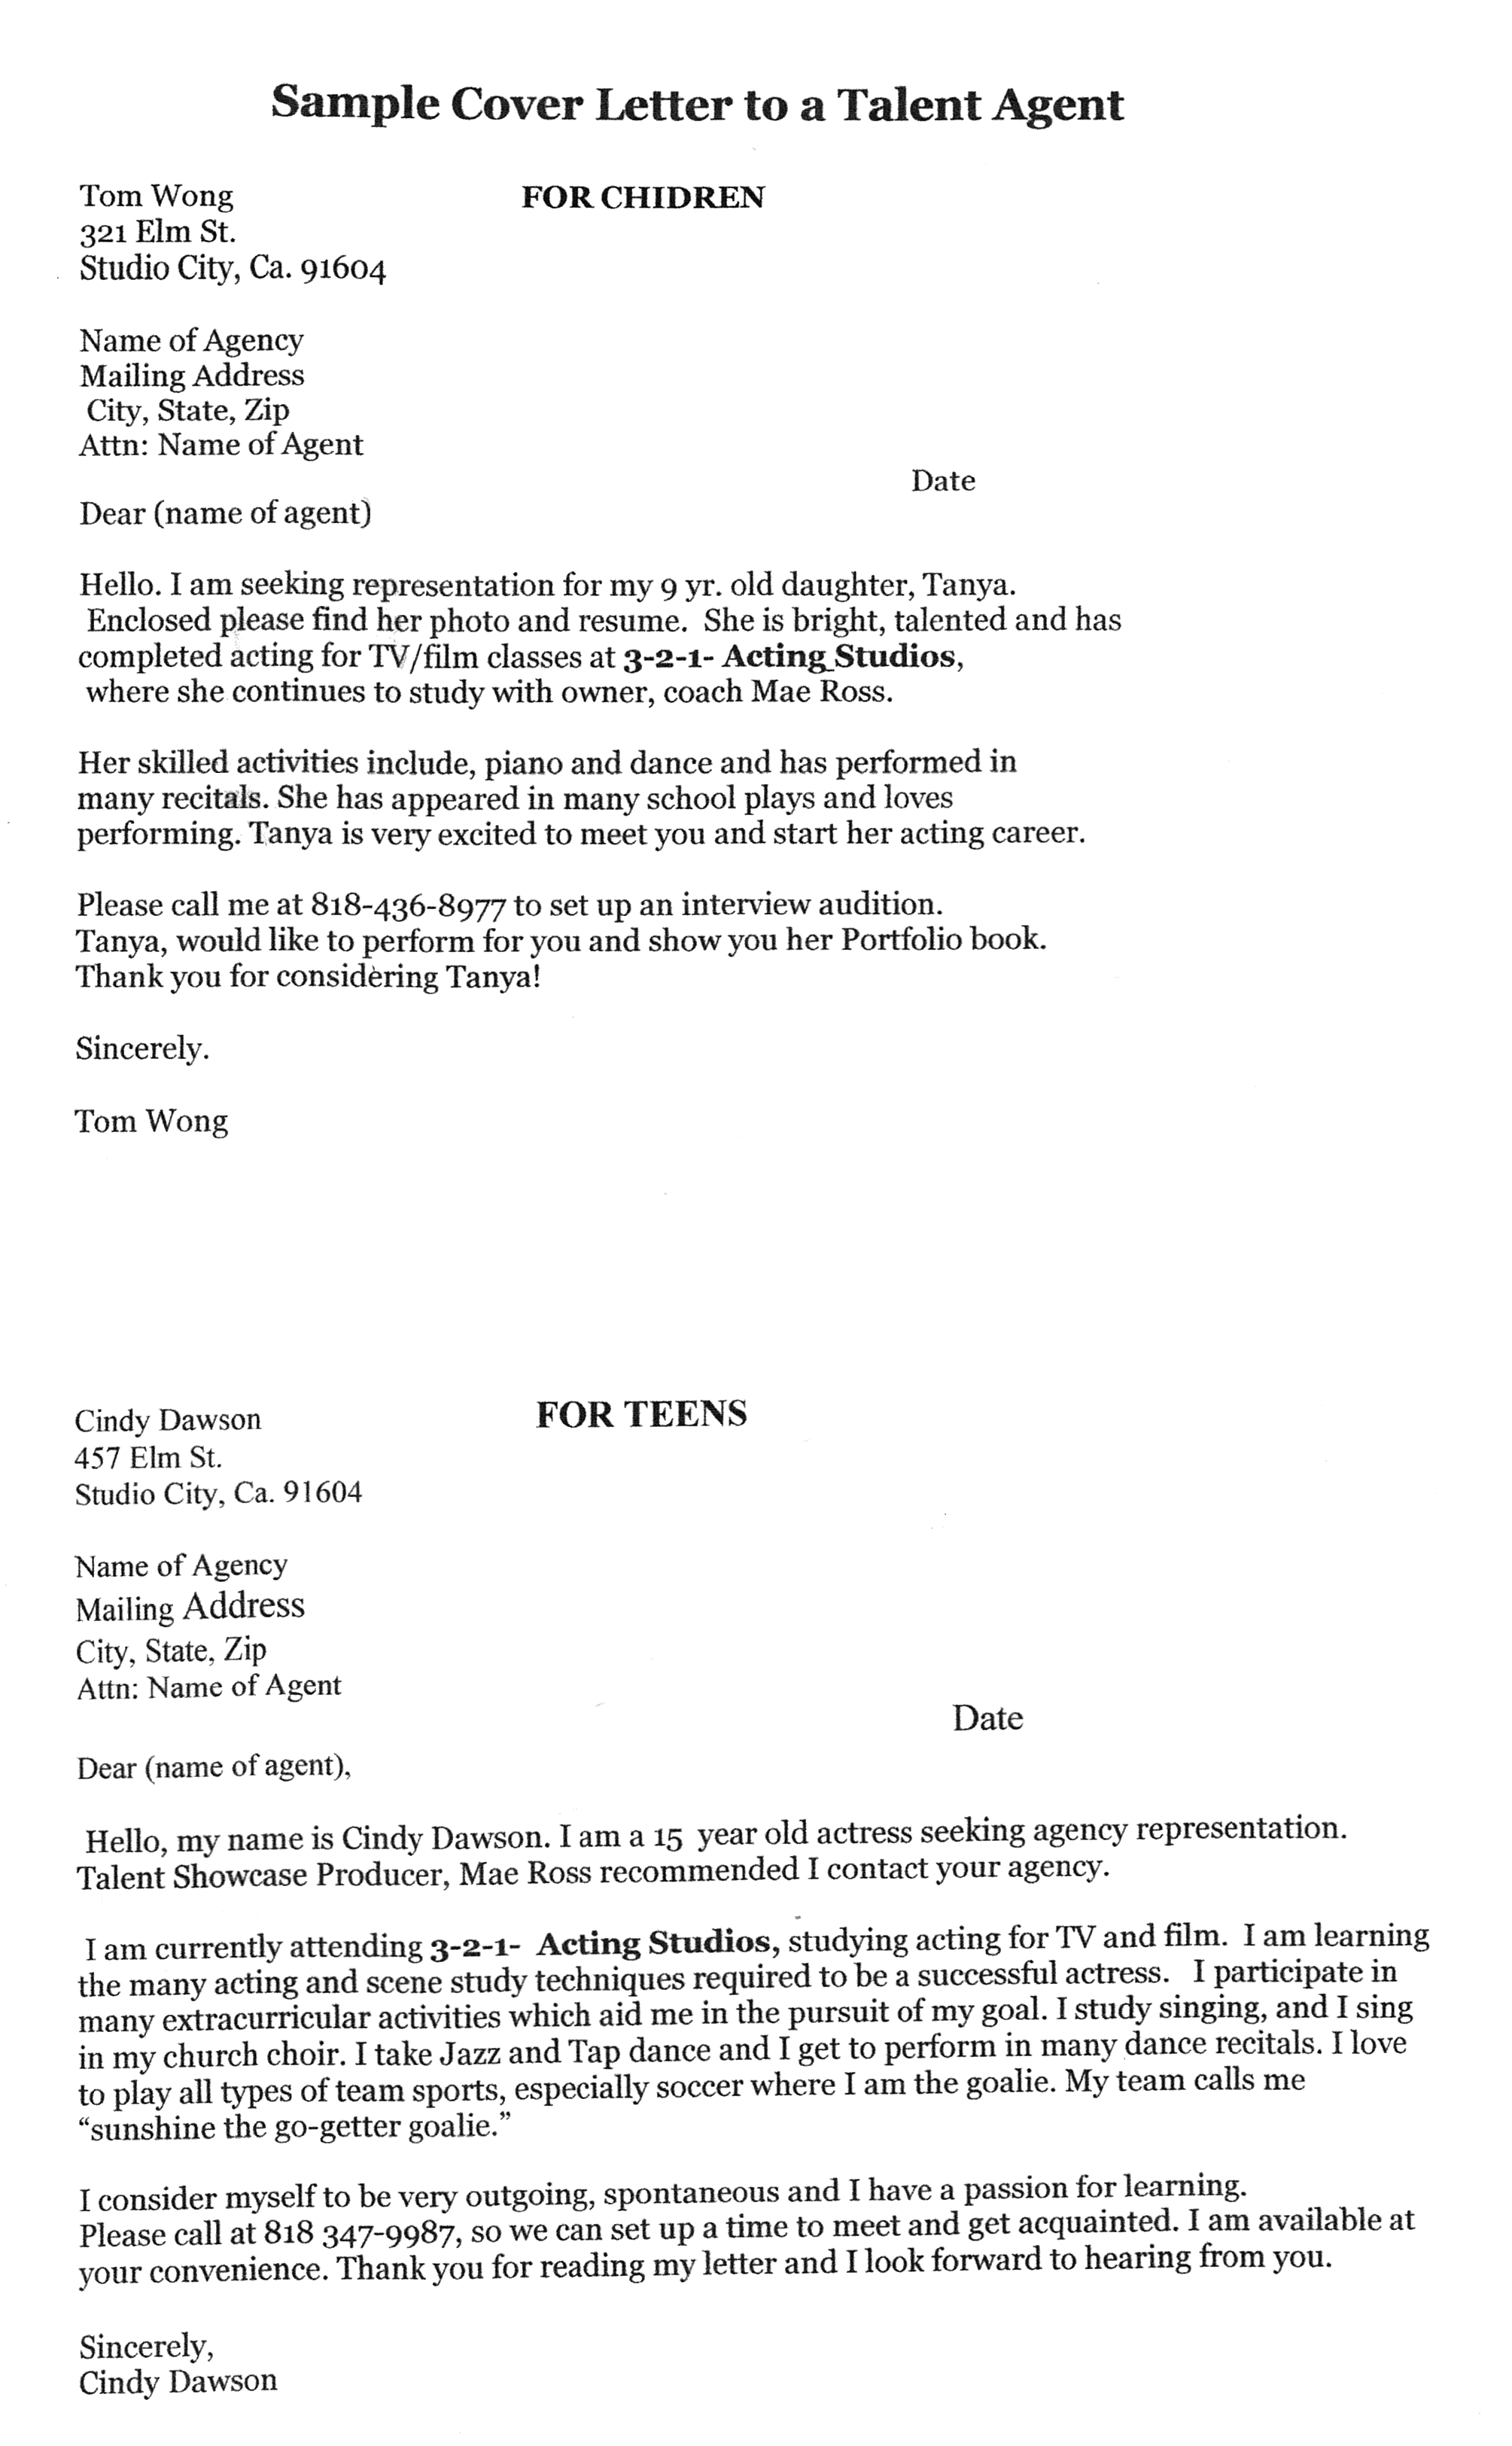 Creative Cover Letter Copywriter Pinterest  Sample It Cover Letter